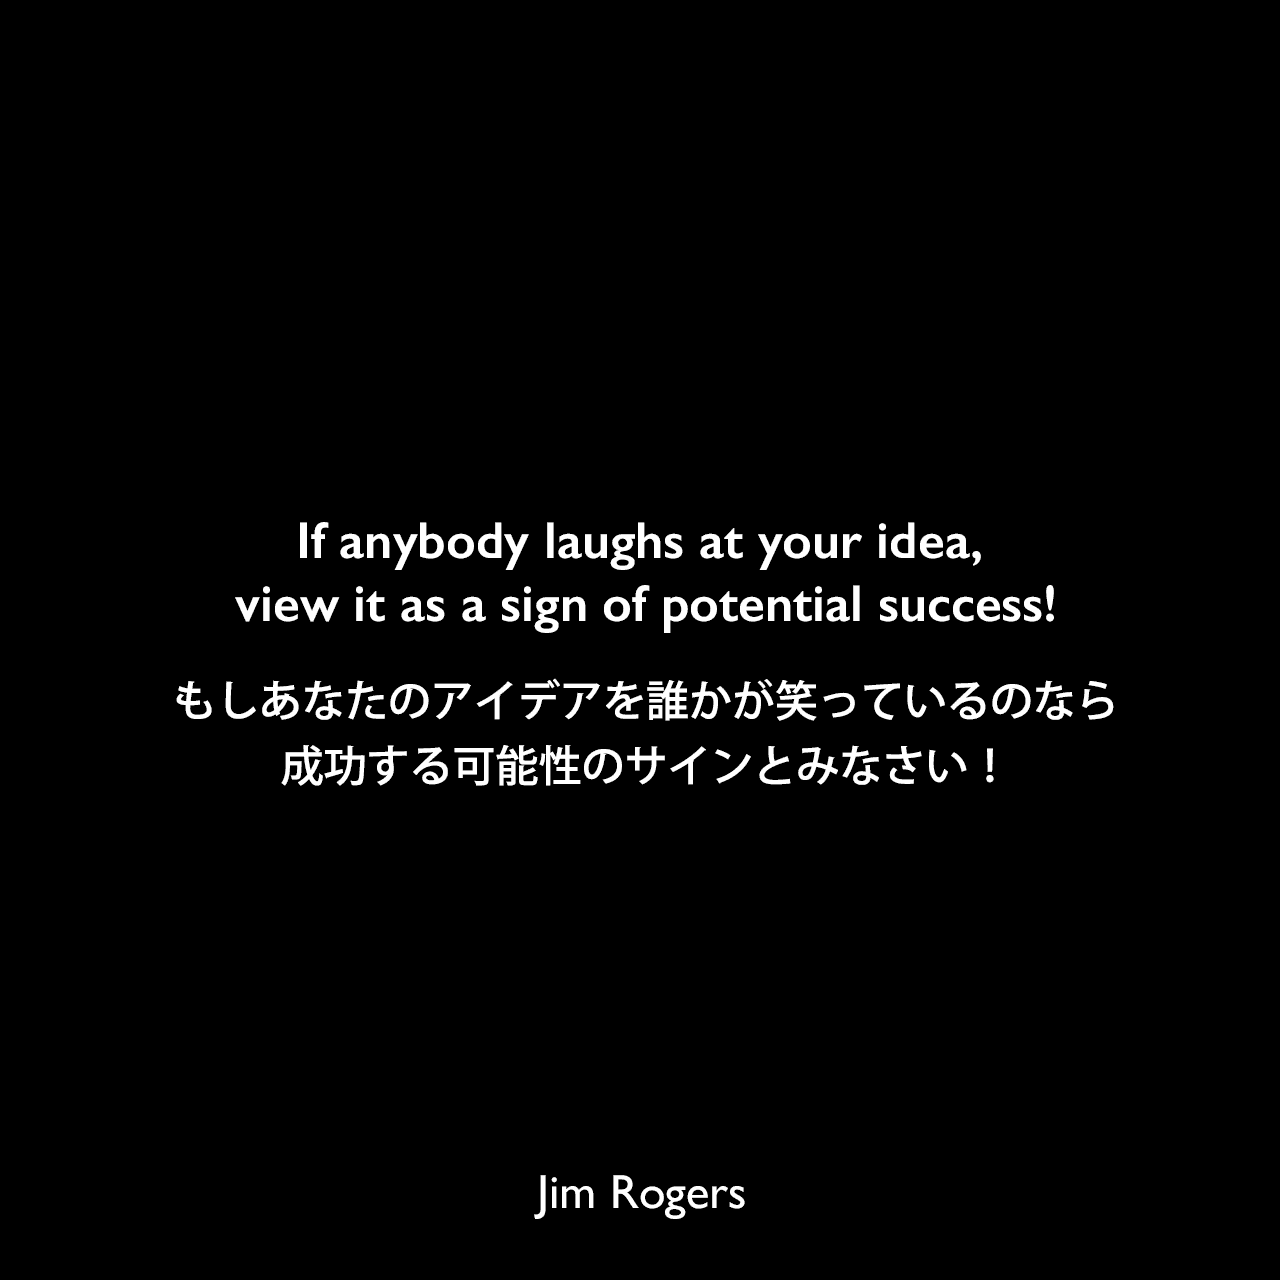 If anybody laughs at your idea, view it as a sign of potential success!もしあなたのアイデアを誰かが笑っているのなら、成功する可能性のサインとみなさい!《参照:A Gift to My Children: A Father's Lessons for Life and Investing(2009)》Jim Rogers